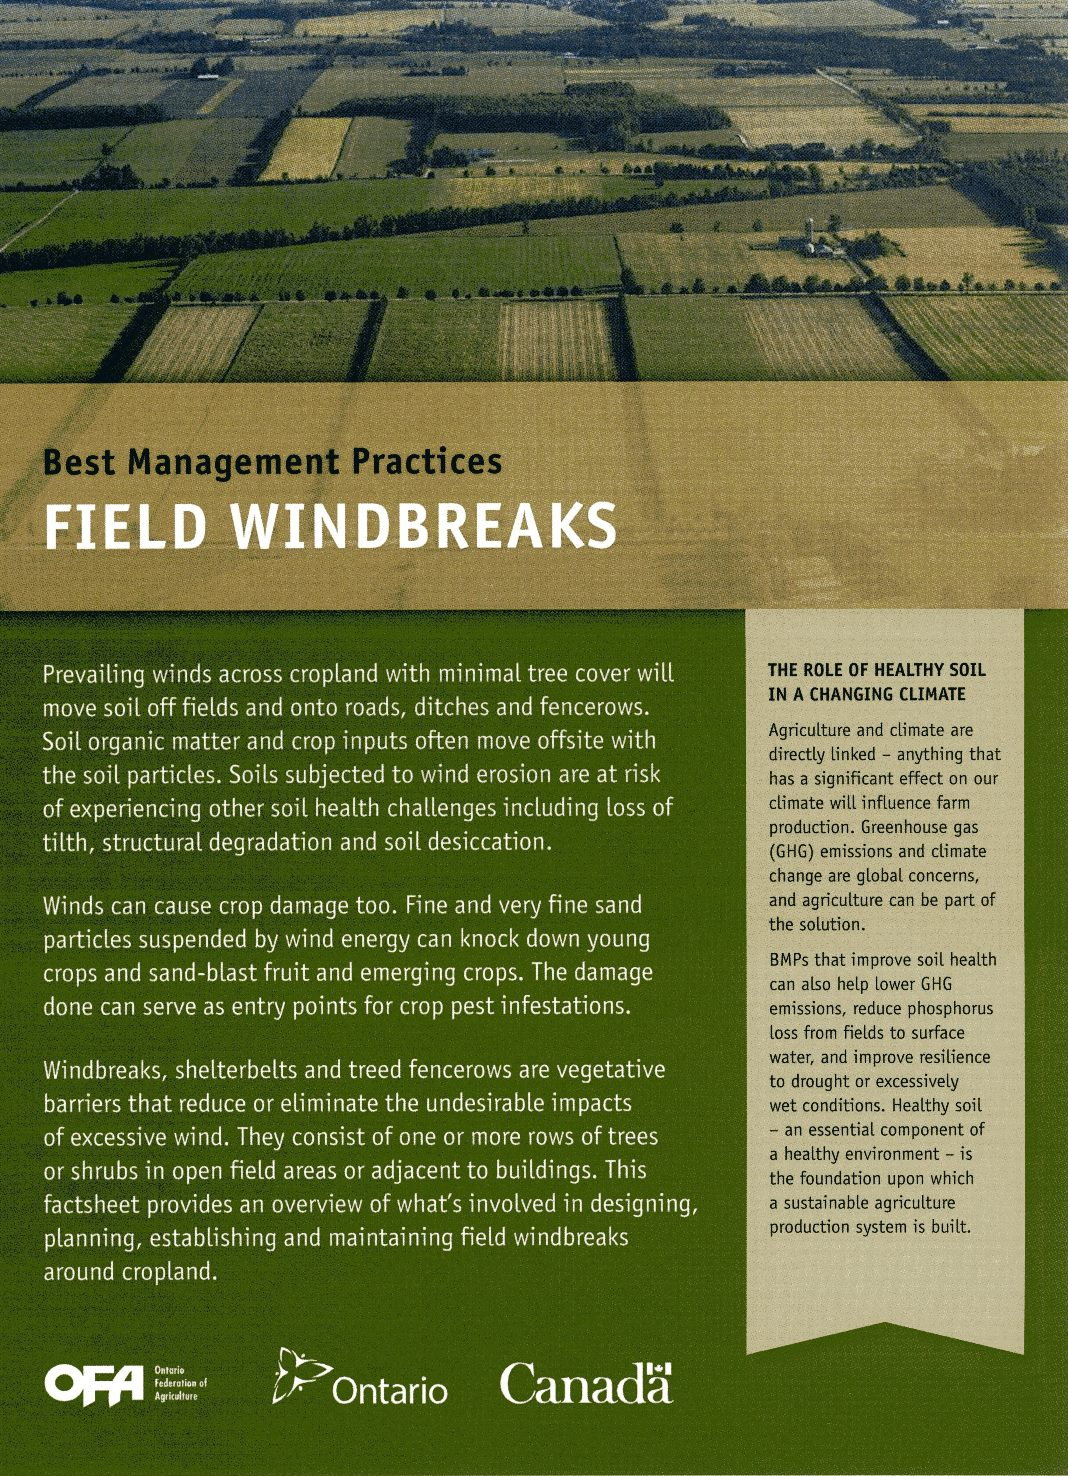 Field Windbreaks